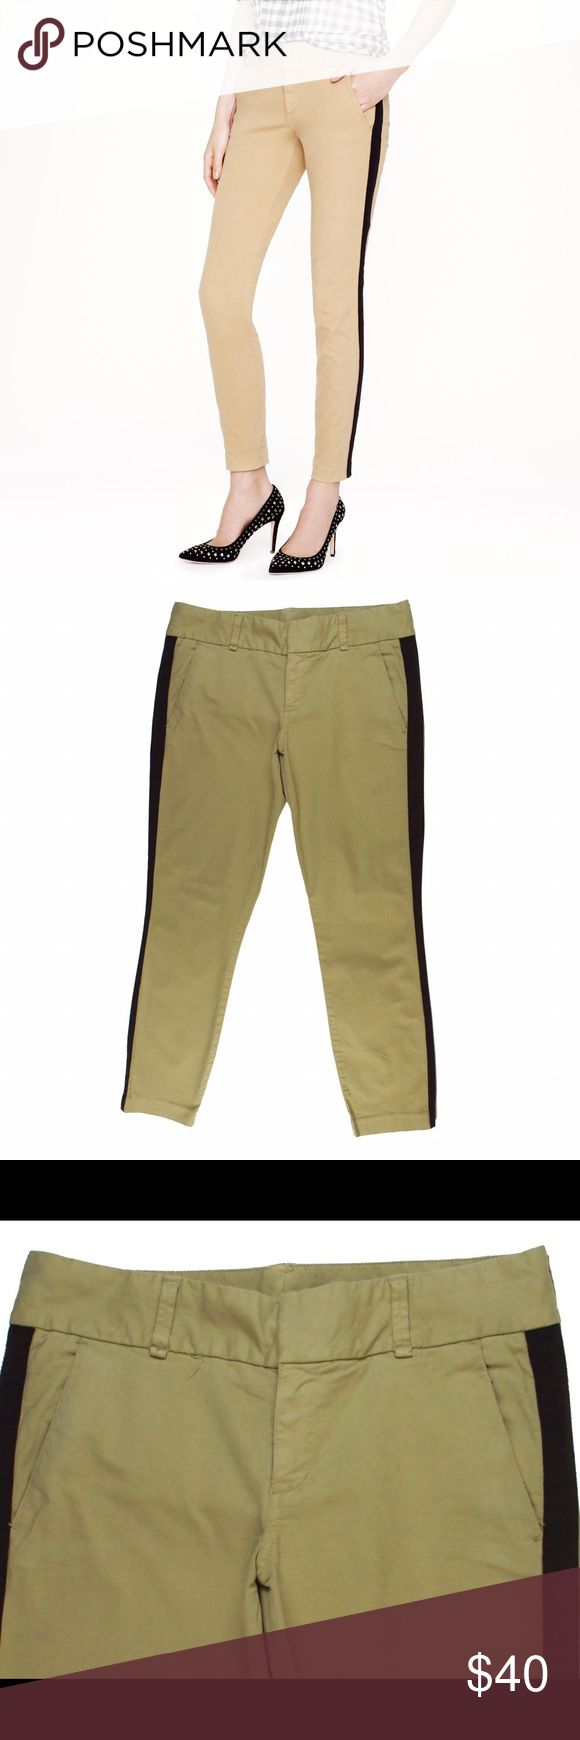 """JCREW Andie Chino Slim Leg Tuxedo Stripe Pants Excellent condition. Color is most accurate in the first pic (cover shot). These khaki Andie chinos from JCREW feature a slim leg, ankle length inseam and black tuxedo stripe down the legs. Made of a cotton blend. Measures: waist: 32"""", rise: 8.5"""", hips: 39"""", inseam: 28"""" J. Crew Pants"""